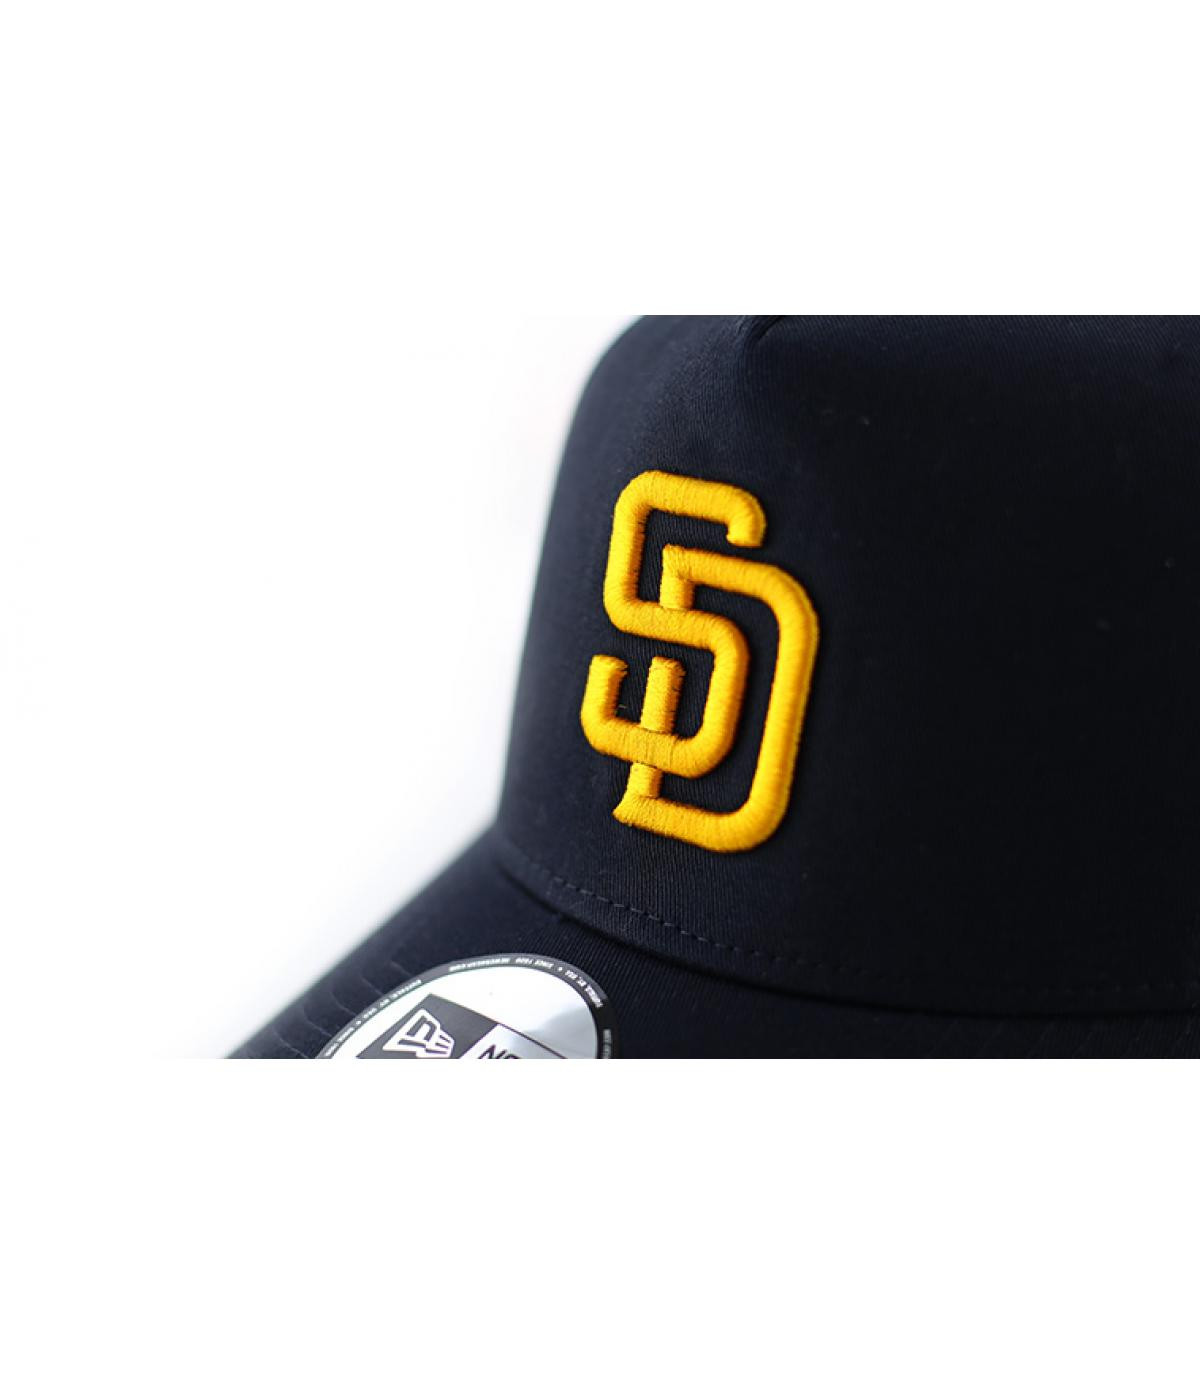 Détails Trucker San Diego Padres MLB Essential navy gold - image 3